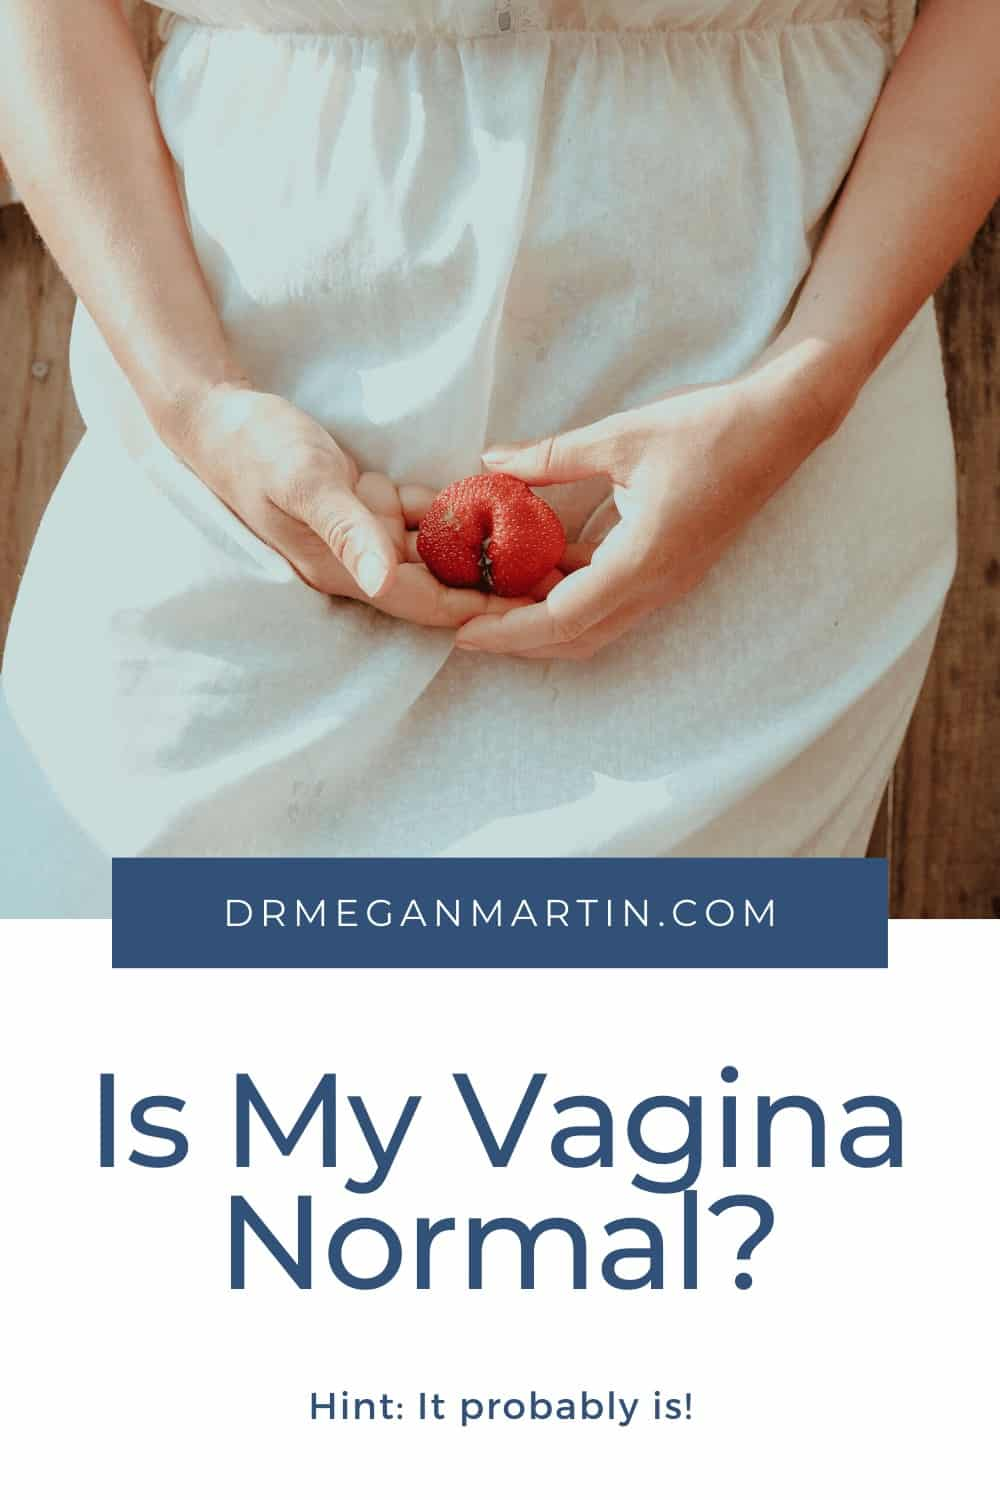 Is my vagina normal?